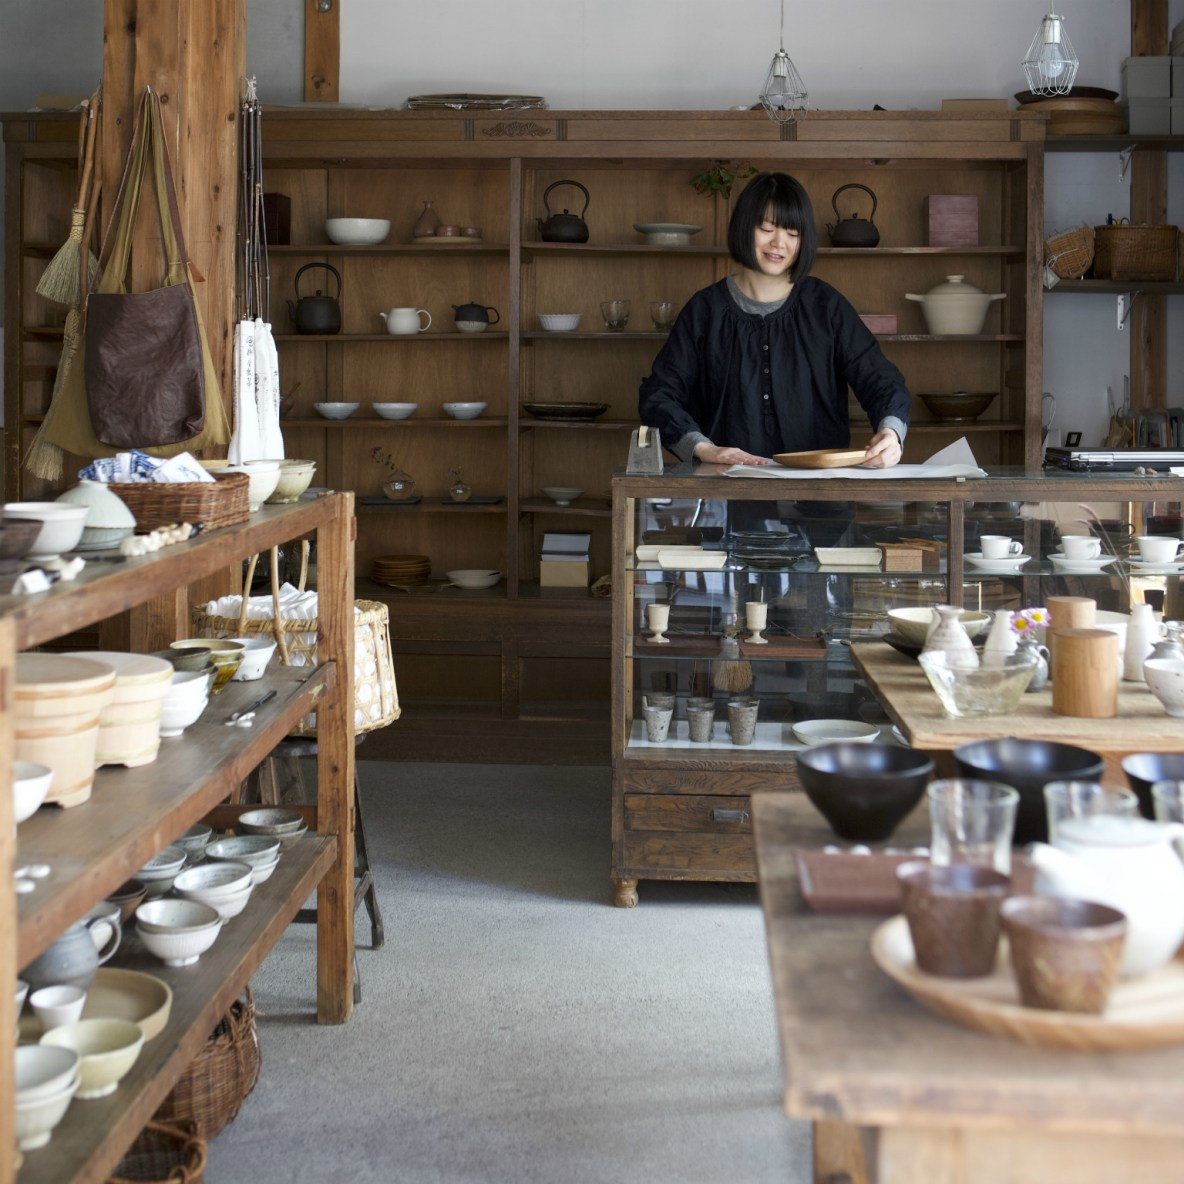 Slow-life kitchenware inspired by wisdom of rural craftsmen